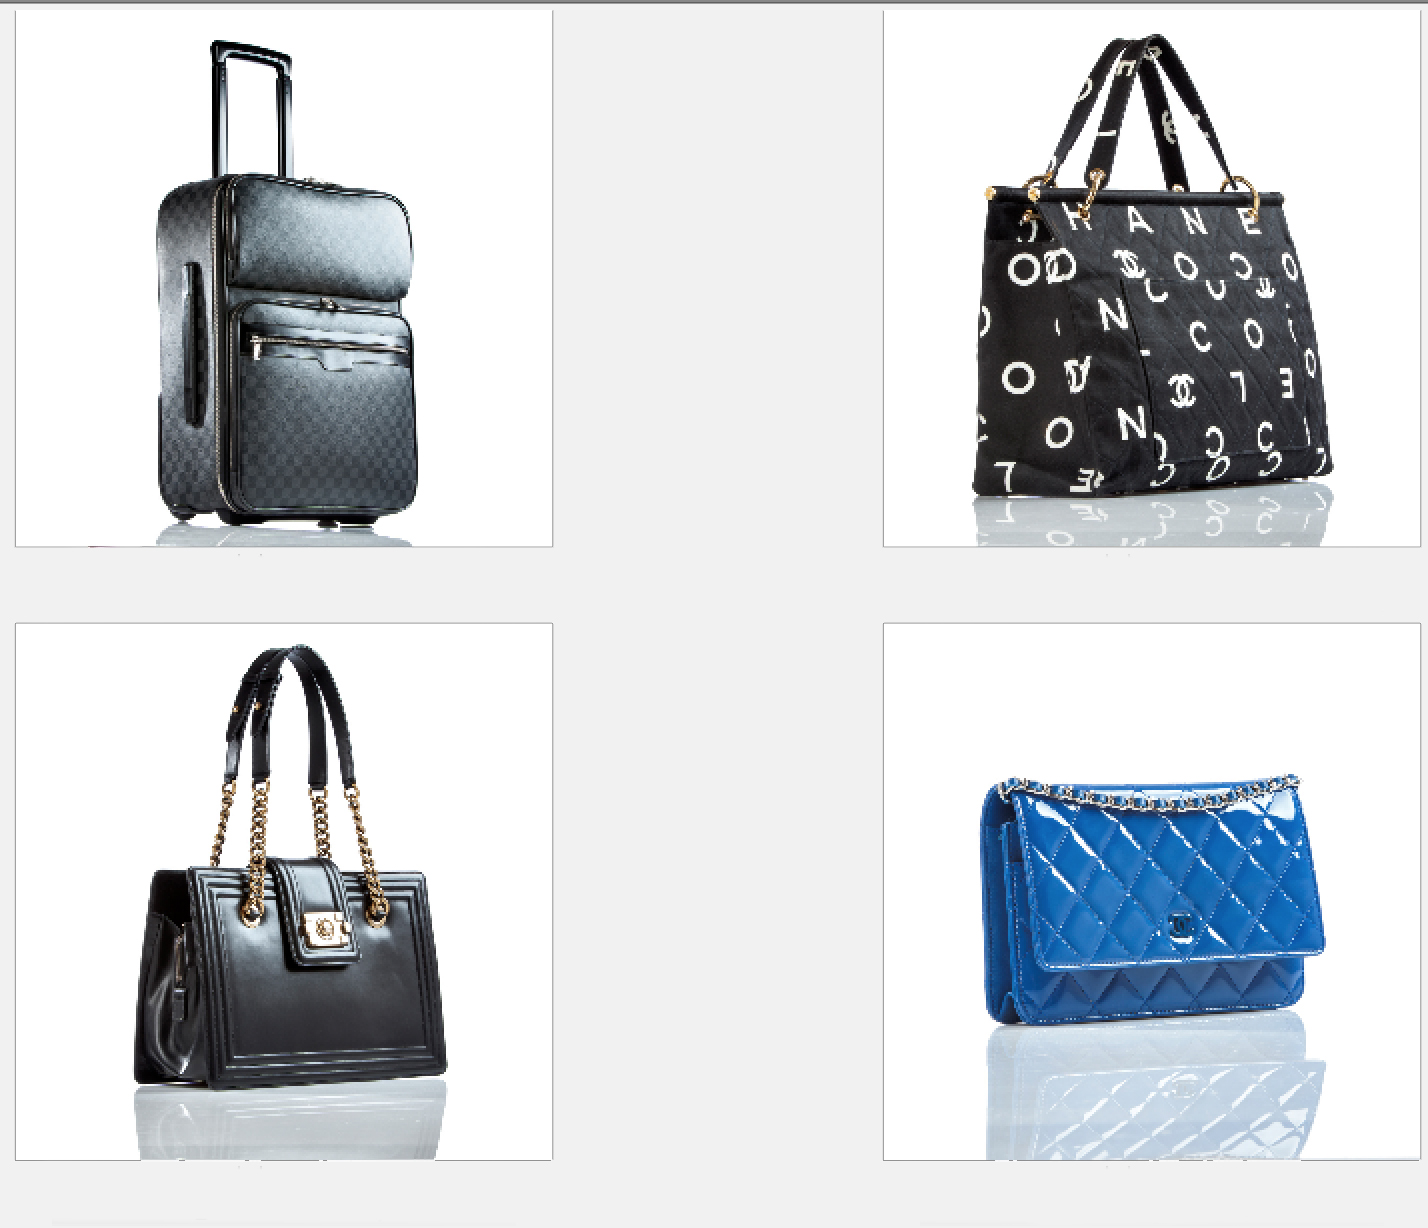 e-commerce_photographer_handbags